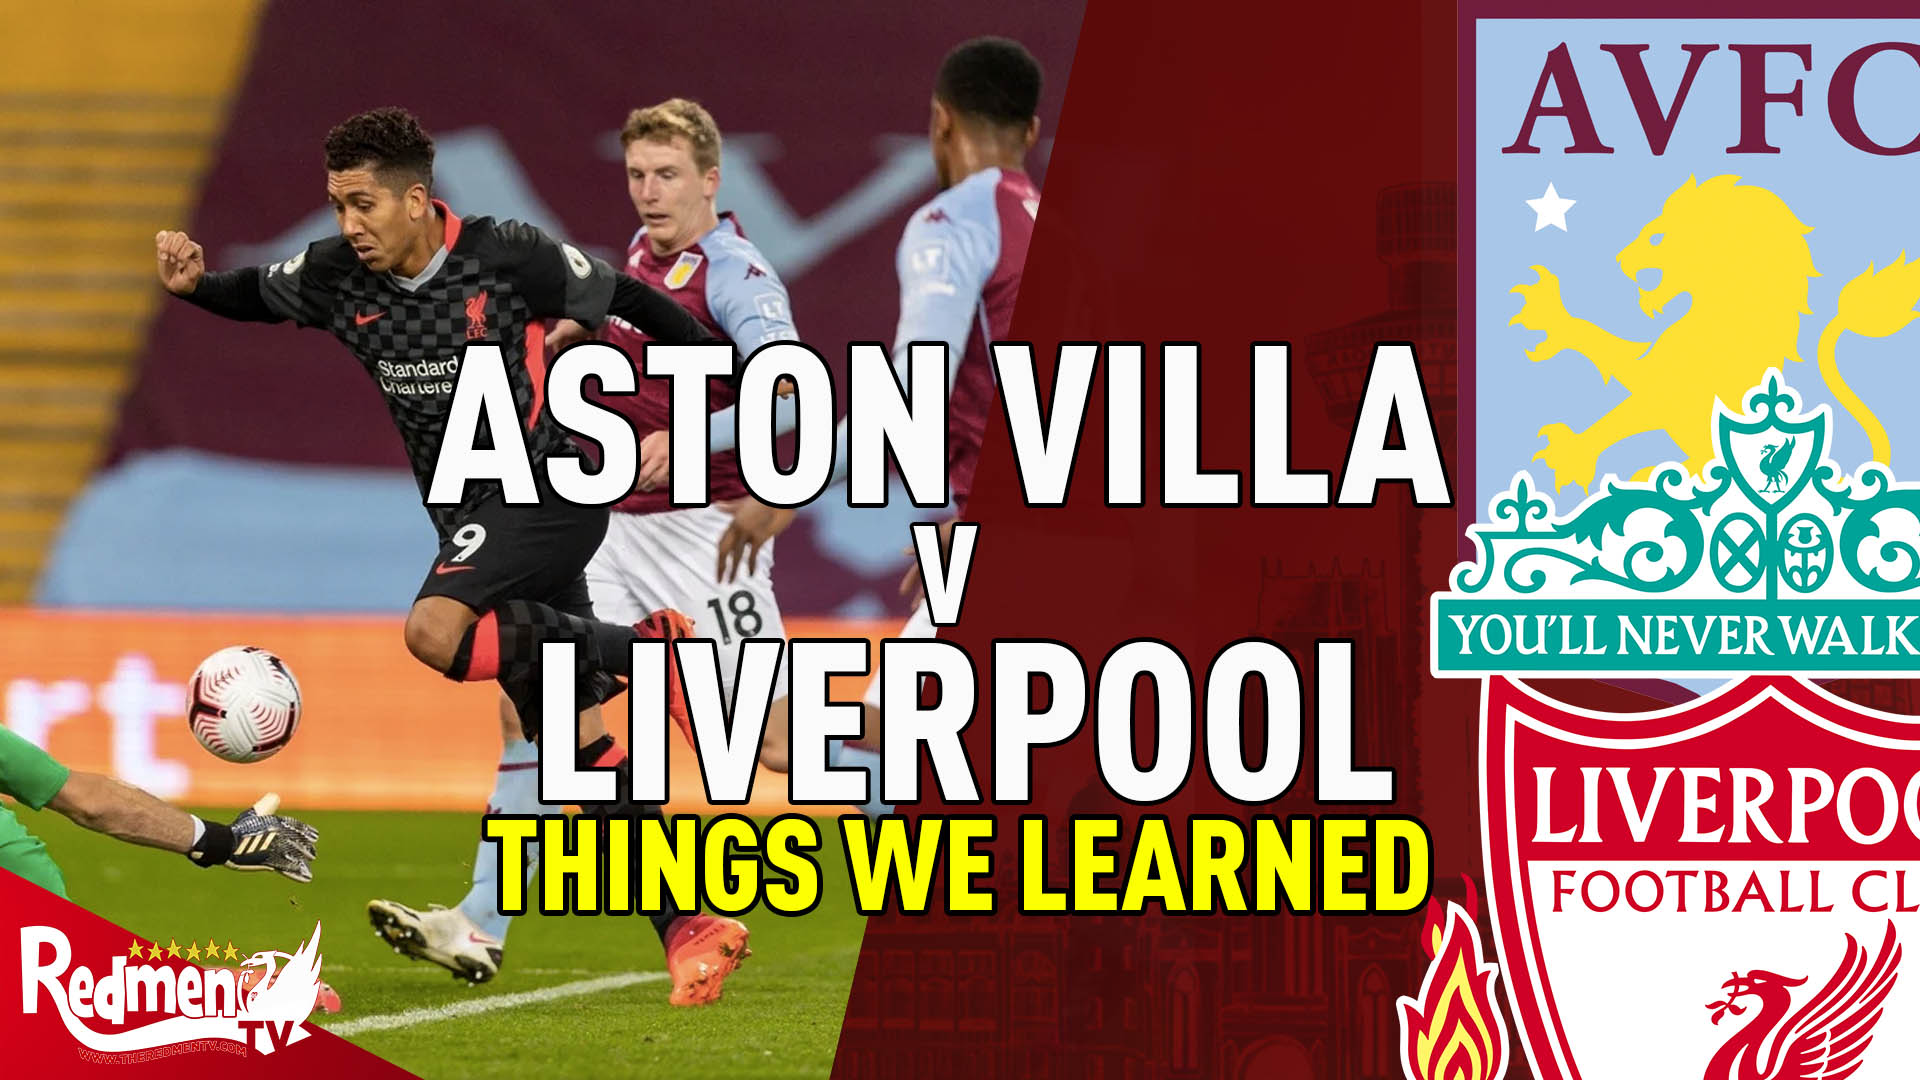 Aston Villa V Liverpool Things We Learned The Redmen Tv